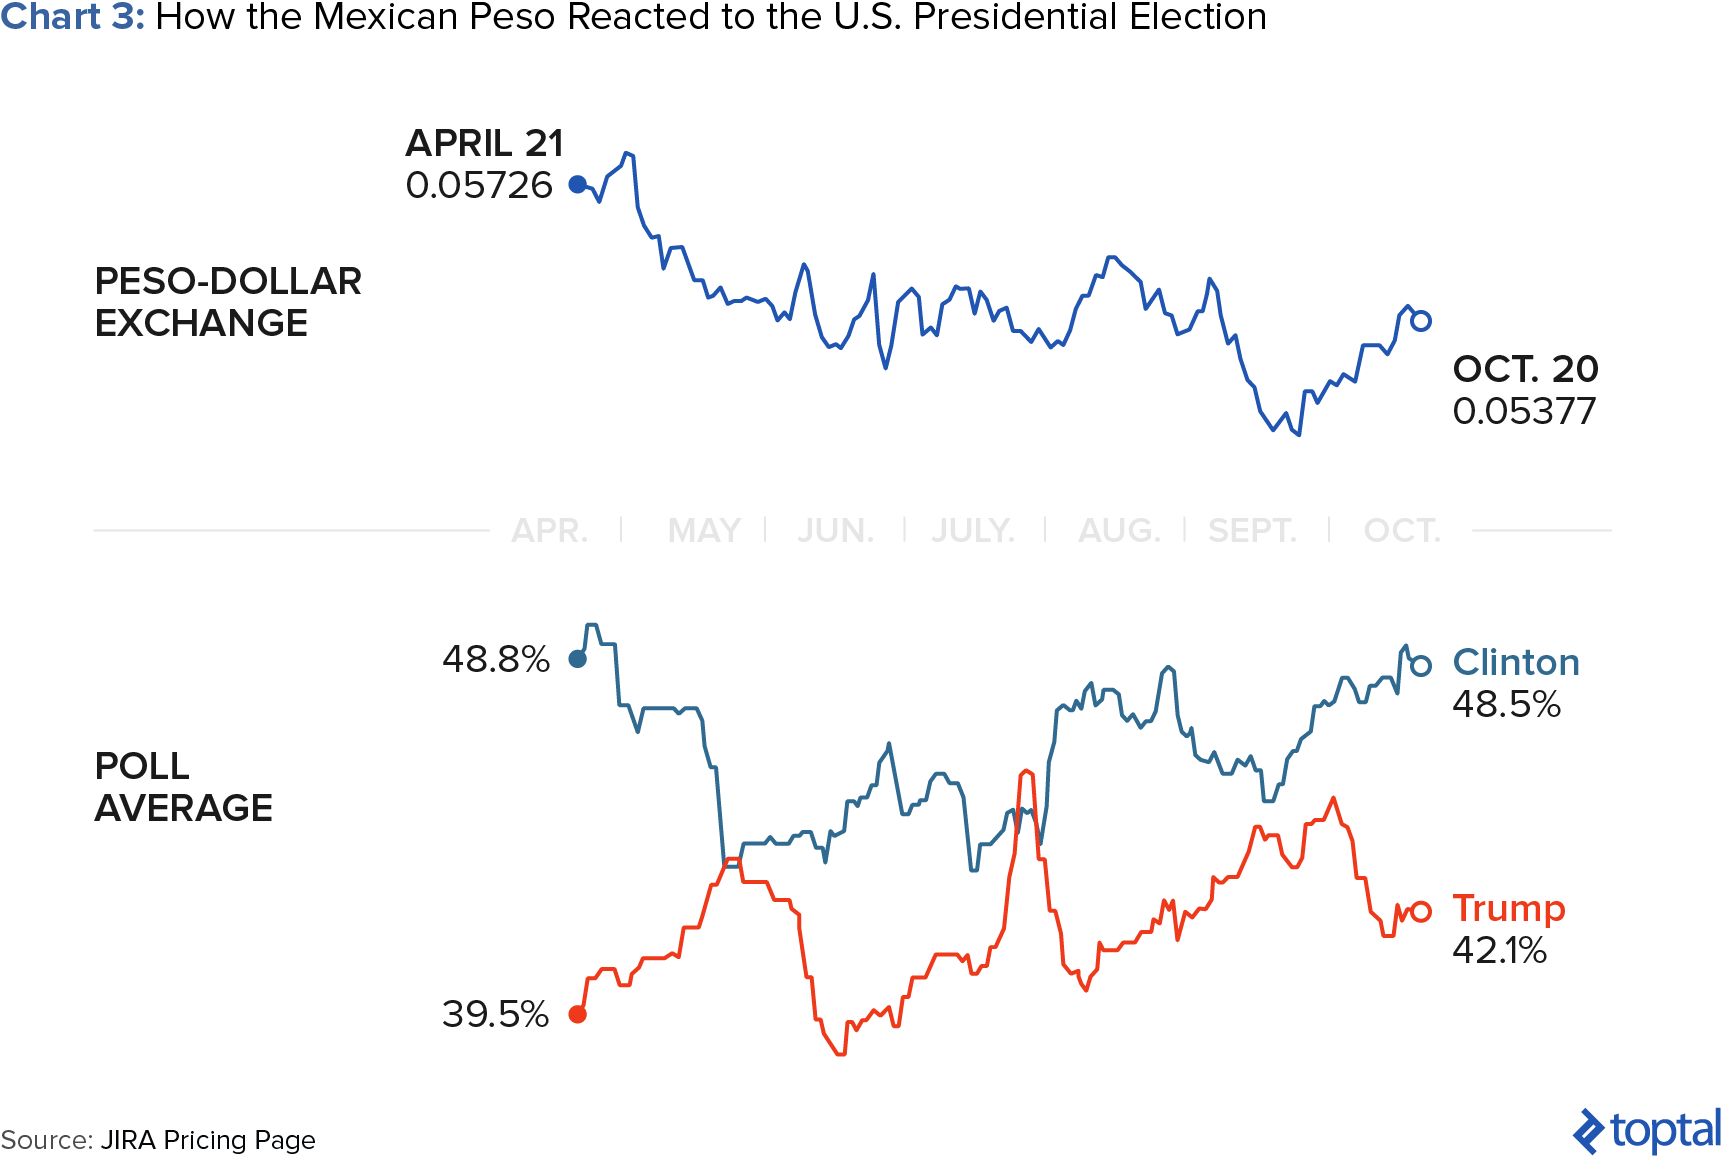 Mexican Peso and U.S. Election